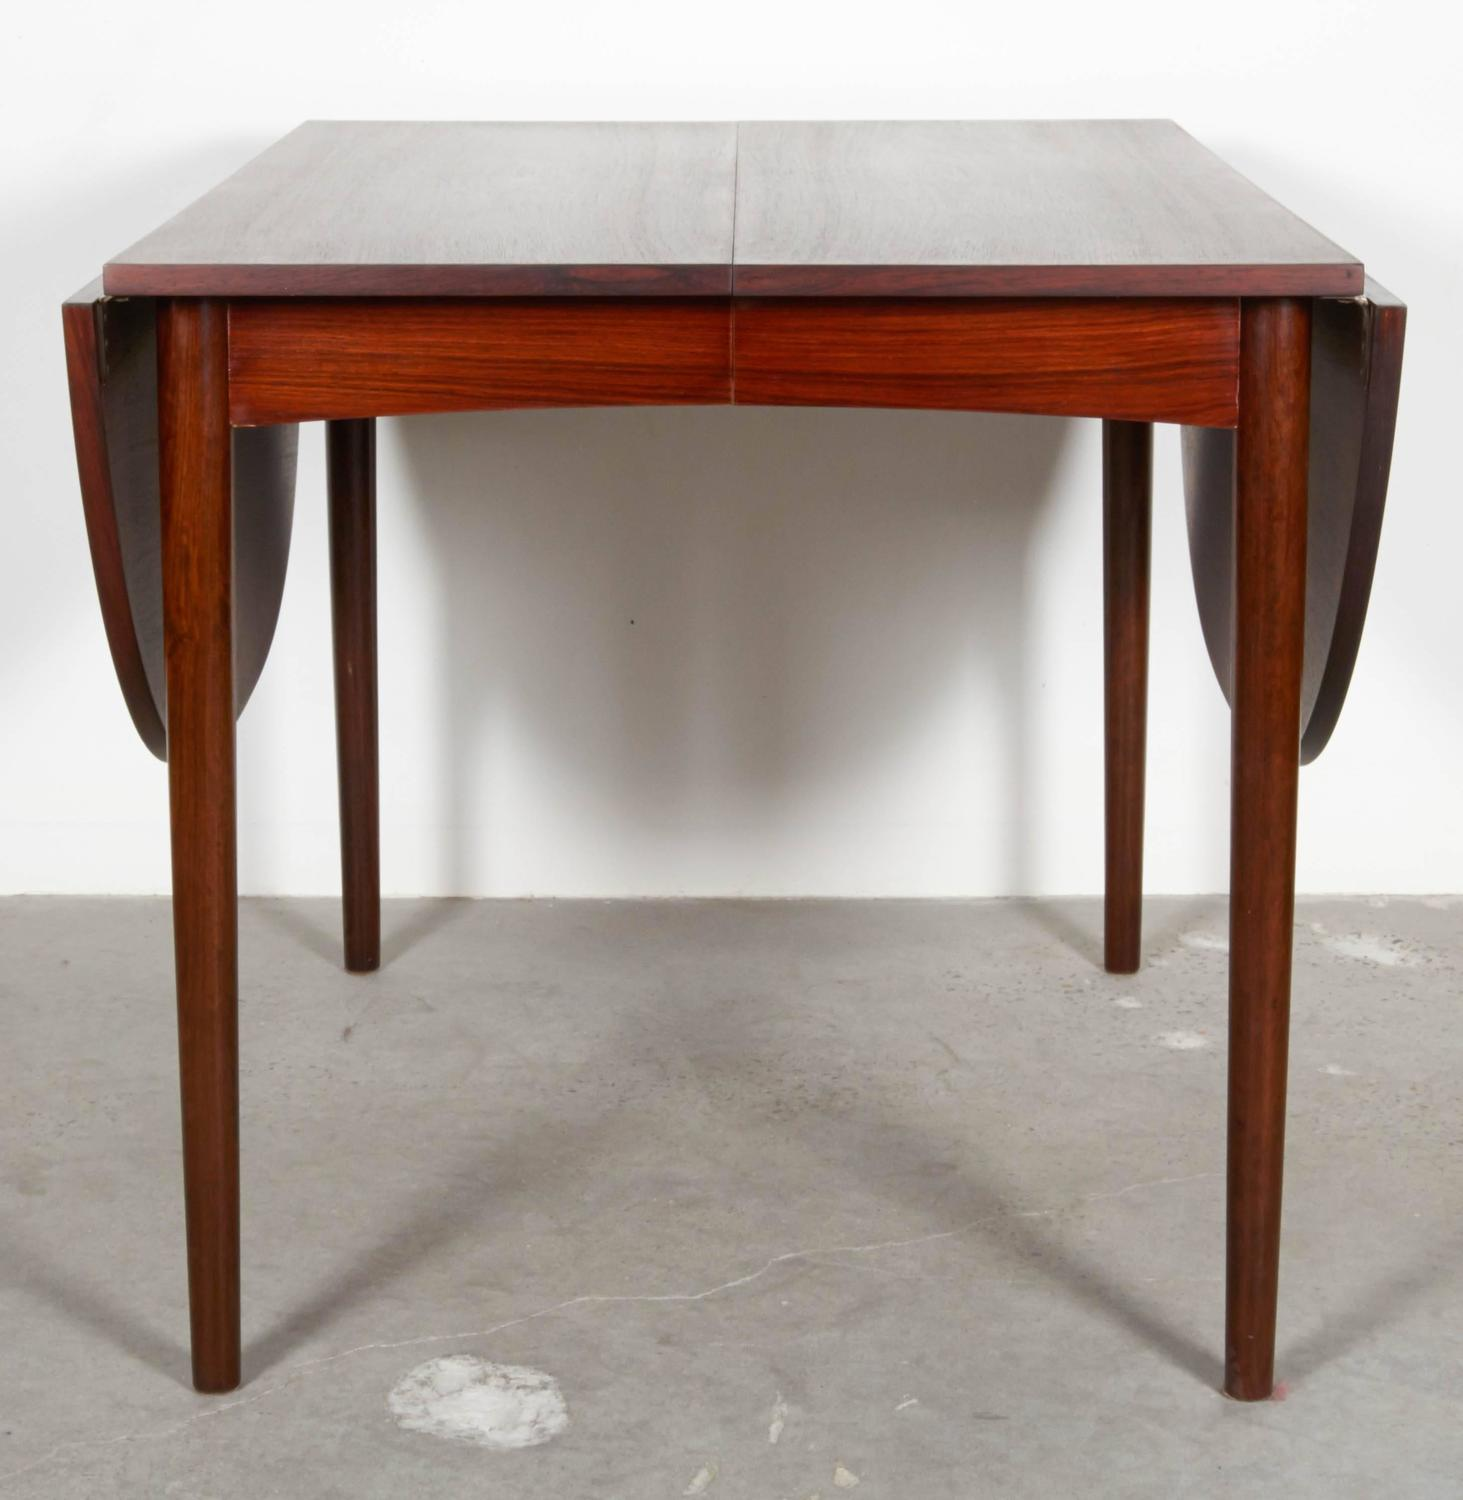 Rosewood Drop Leaf Dining Table at 1stdibs : IMG4147z from www.1stdibs.com size 1463 x 1500 jpeg 114kB